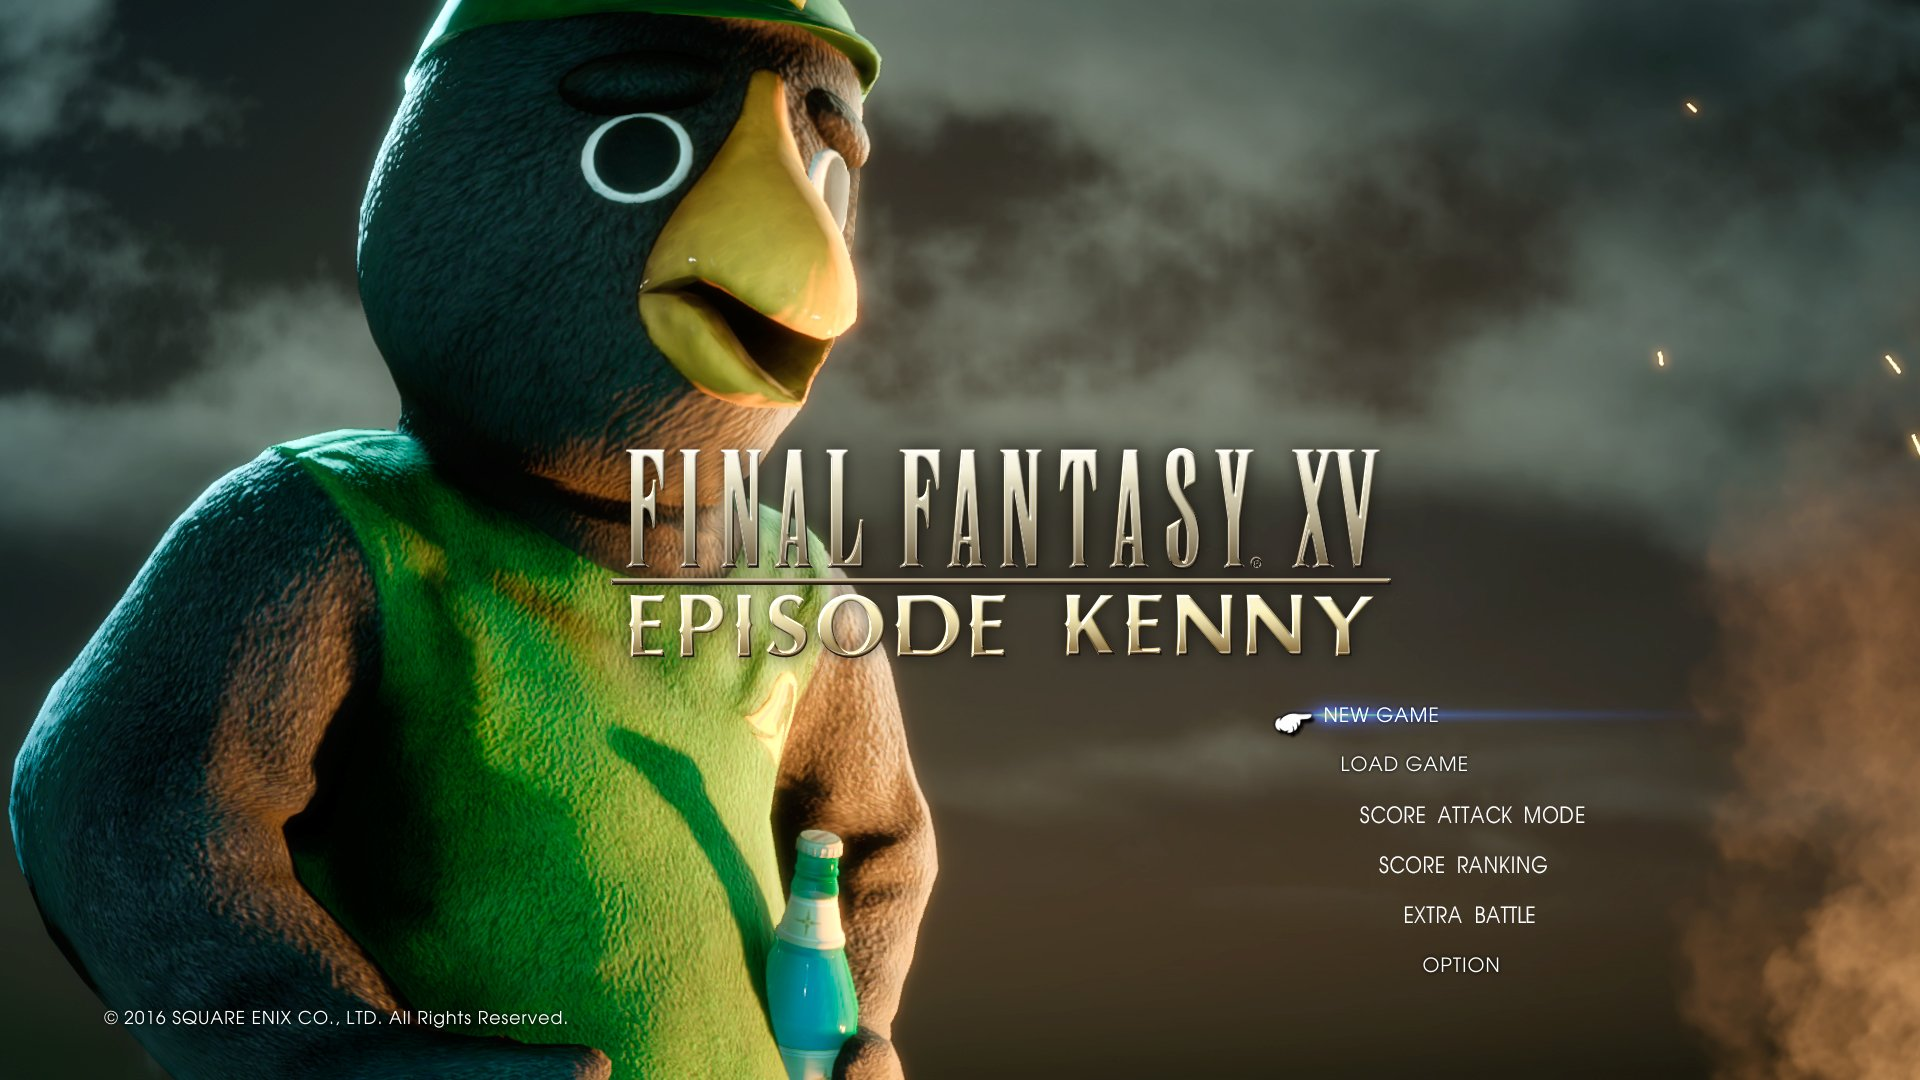 Final Fantasy XVs April Fool Is A Cute Episode Kenny DLC